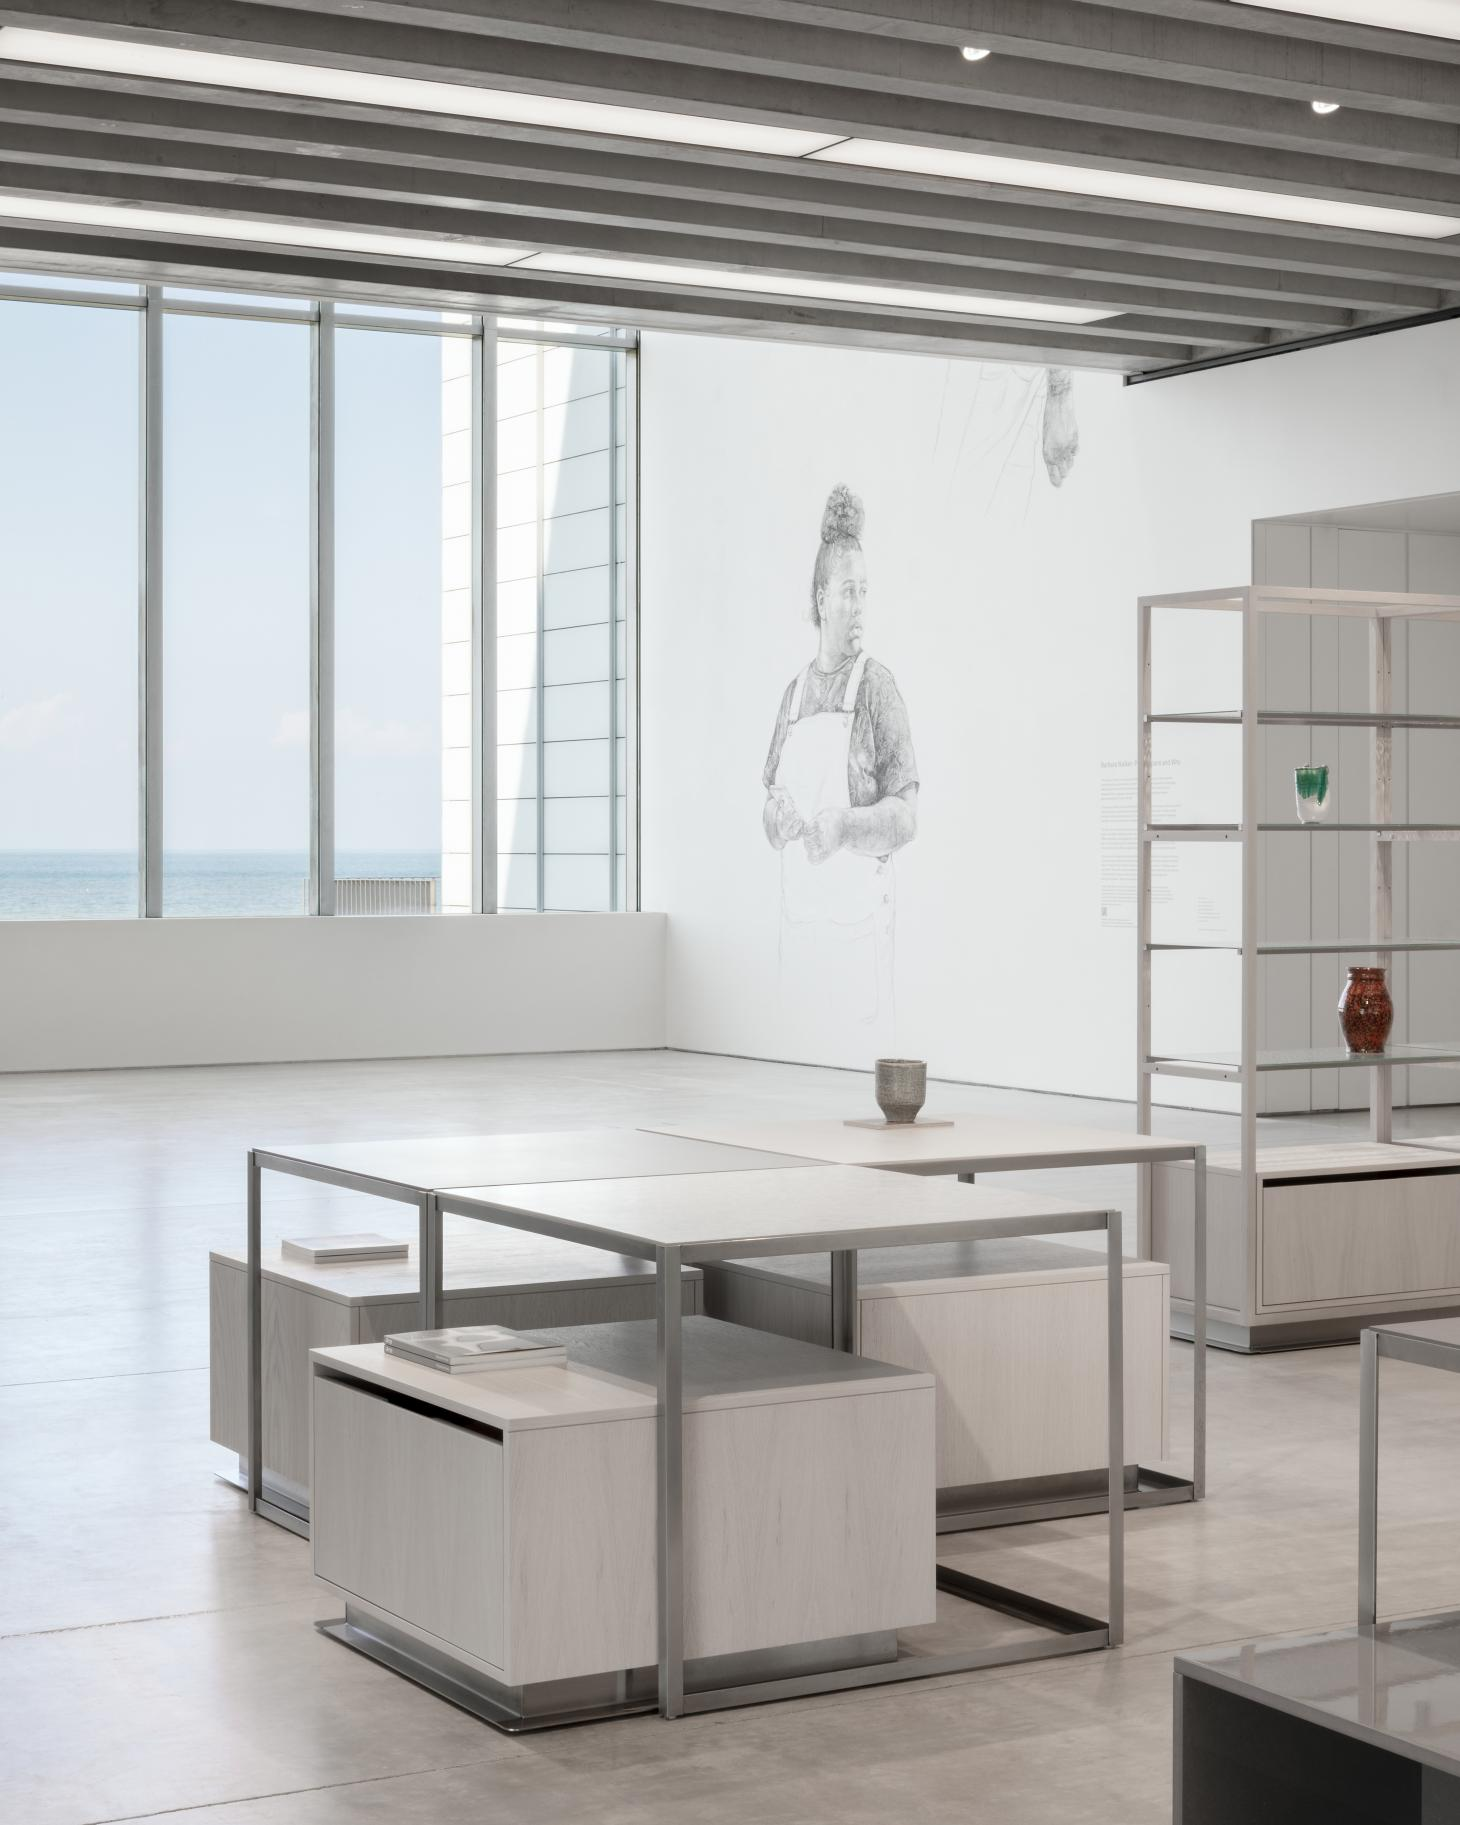 view of minimalist Turner Contemporary shop with views out of the window